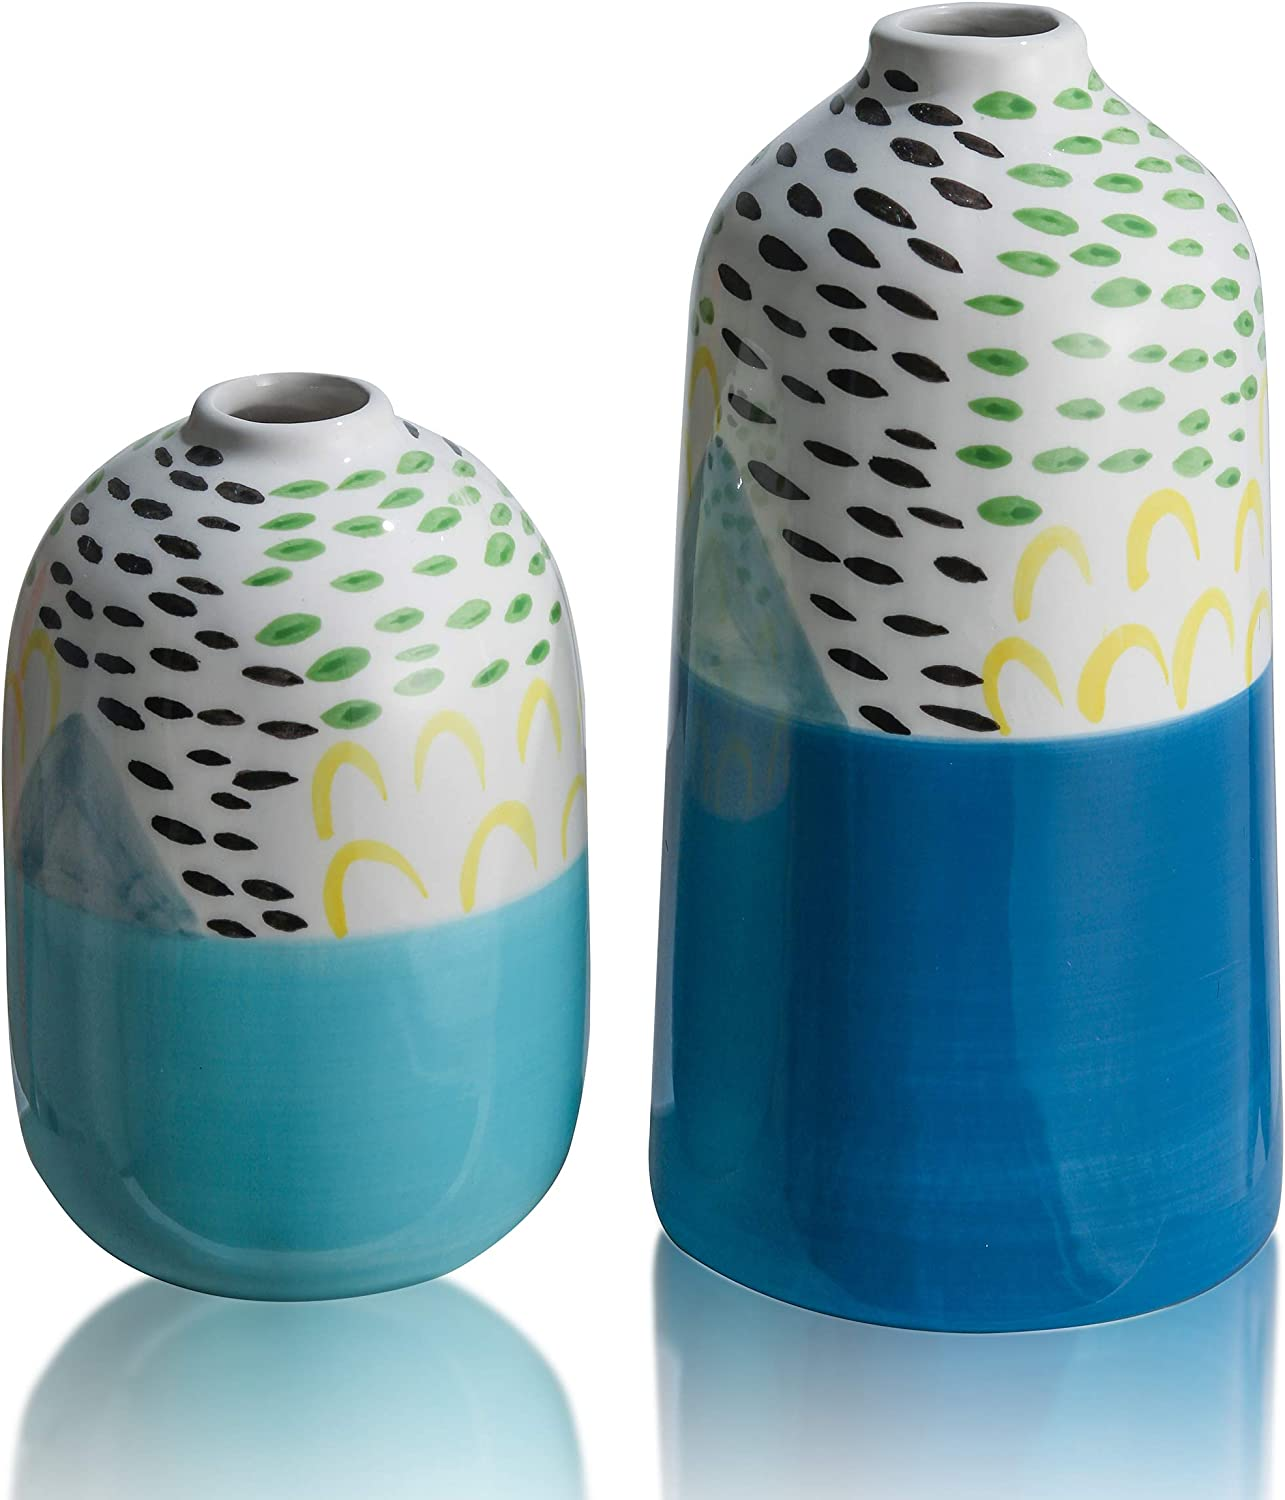 TERESA'S COLLECTIONS Ceramic Colorful Vase, Blue and White Small Abstract Decorative Vases for Home Decor, Mantel, Table, Living Room, Office Decoration-Set of 2